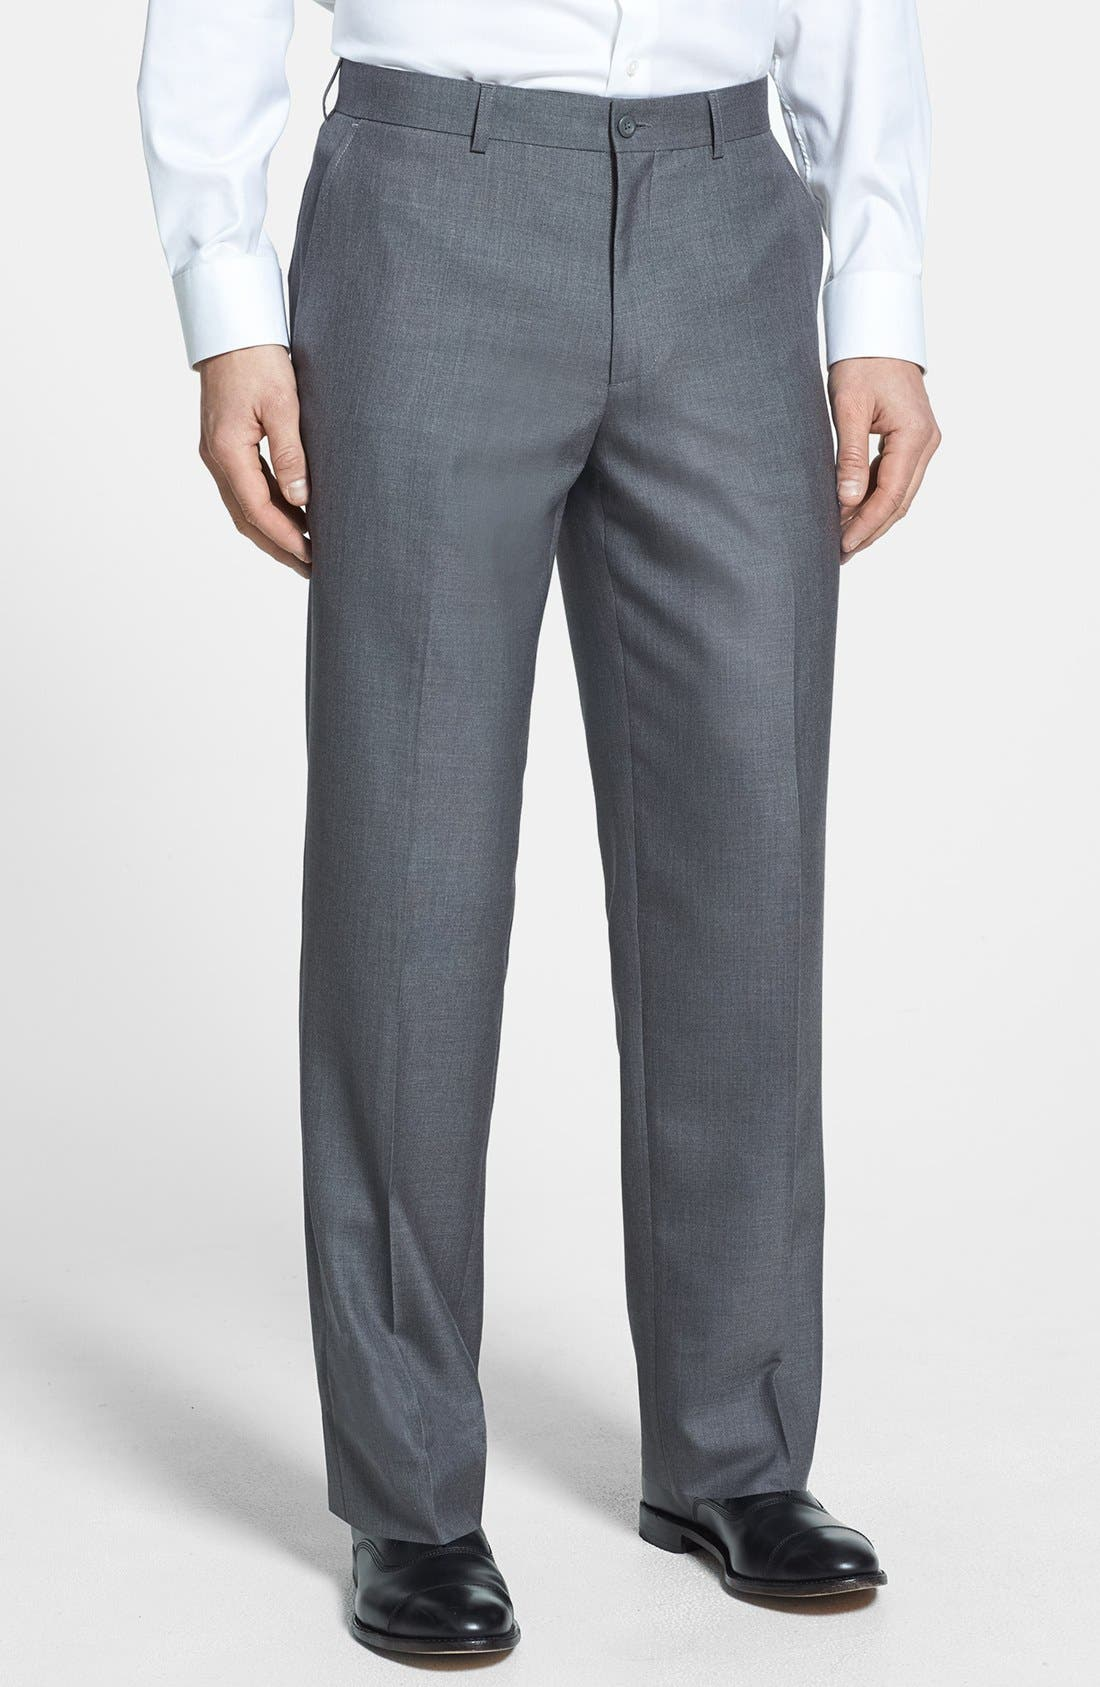 Alternate Image 1 Selected - Linea Naturale Flat Front Textured Trousers (Nordstrom Exclusive)